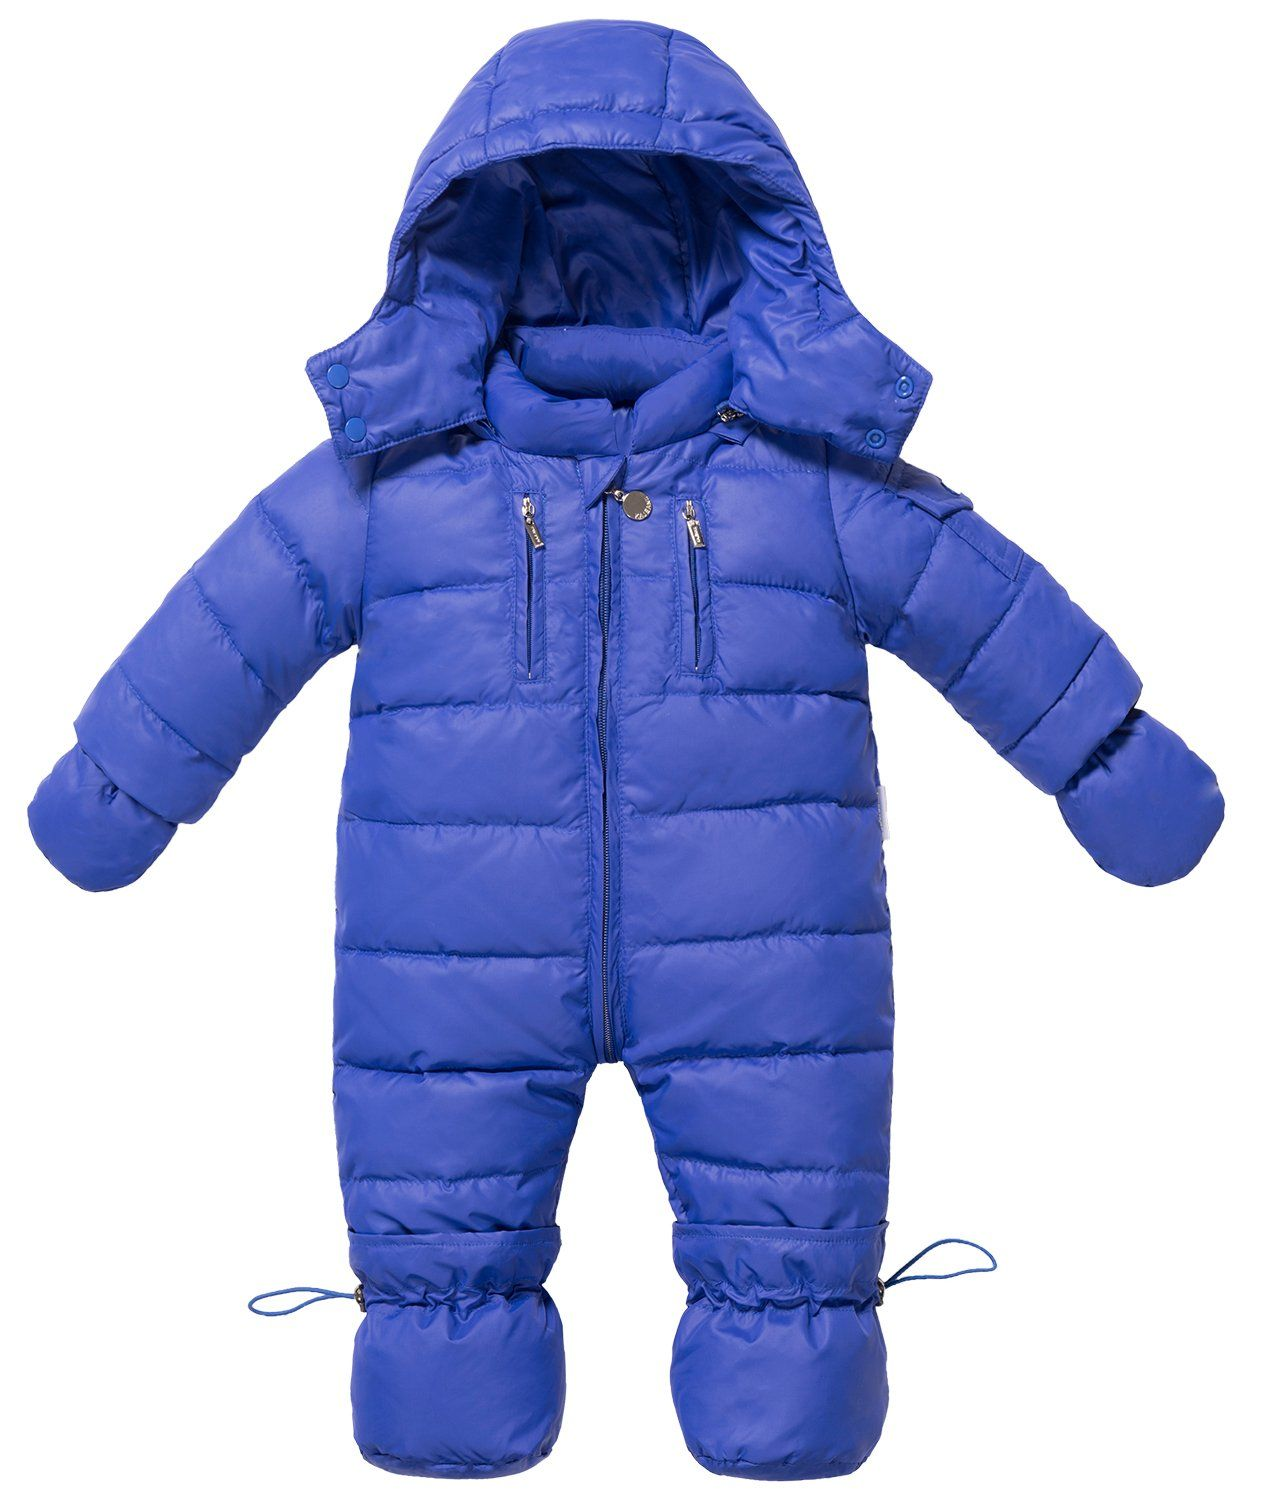 a5883d07a ZOEREA Infant Newborn Baby Hoodie Down Jacket Jumpsuit Pram Snuggly ...